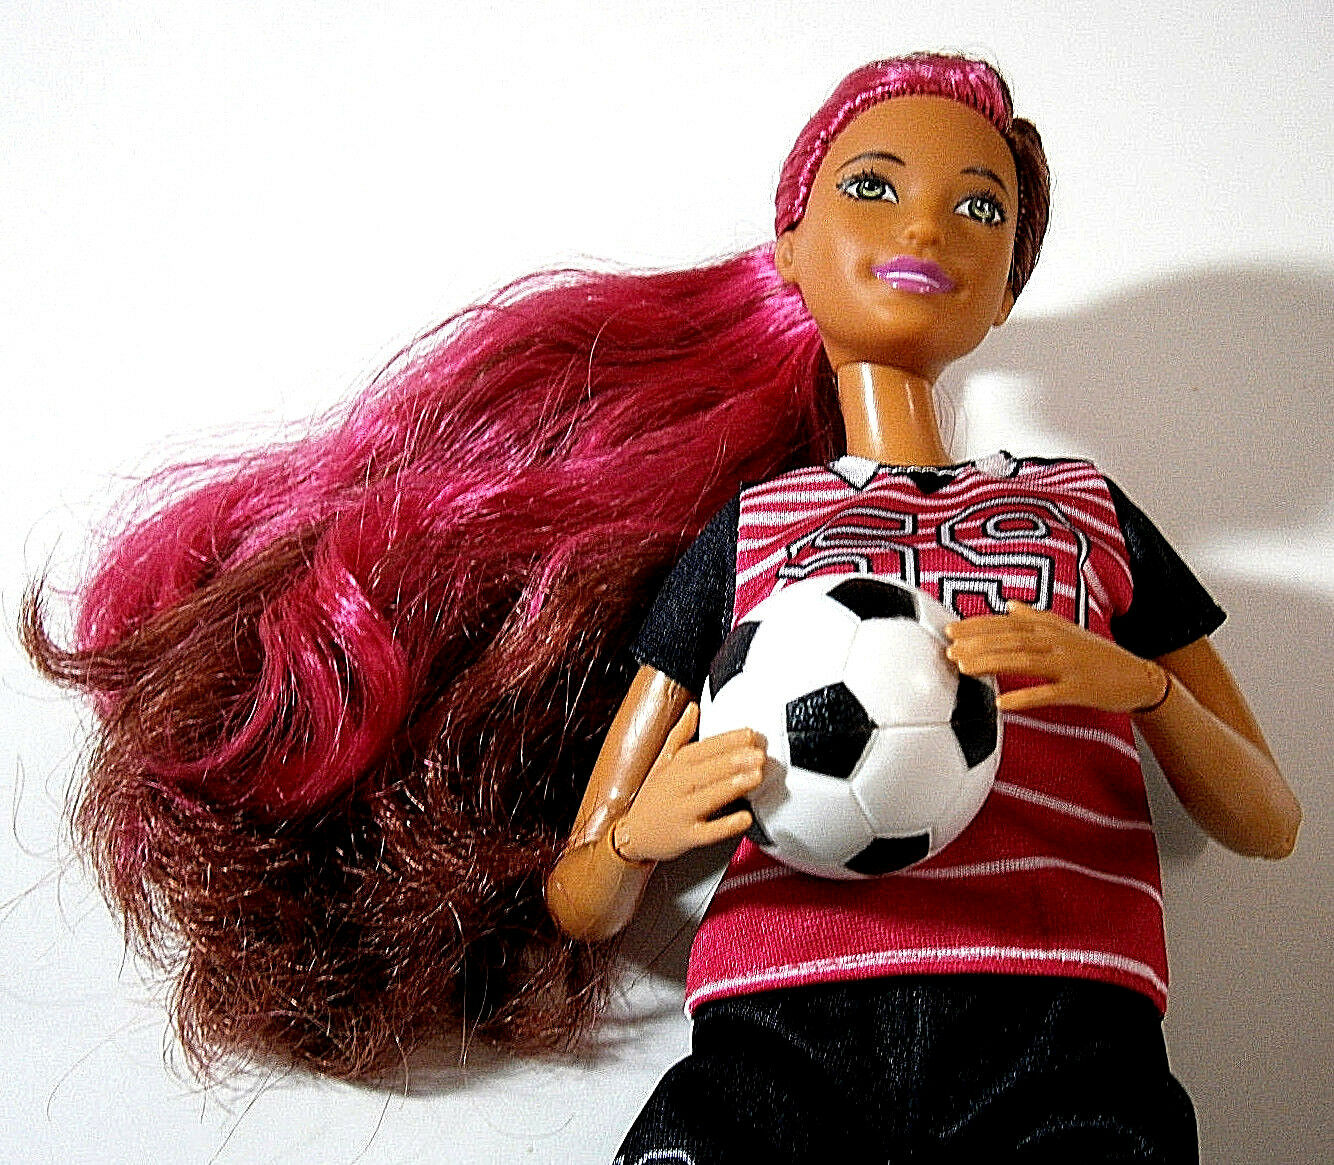 Barbie Mattel made to move Mermaid Soccer Player Doll Mix Dreamtopia a.Konvult